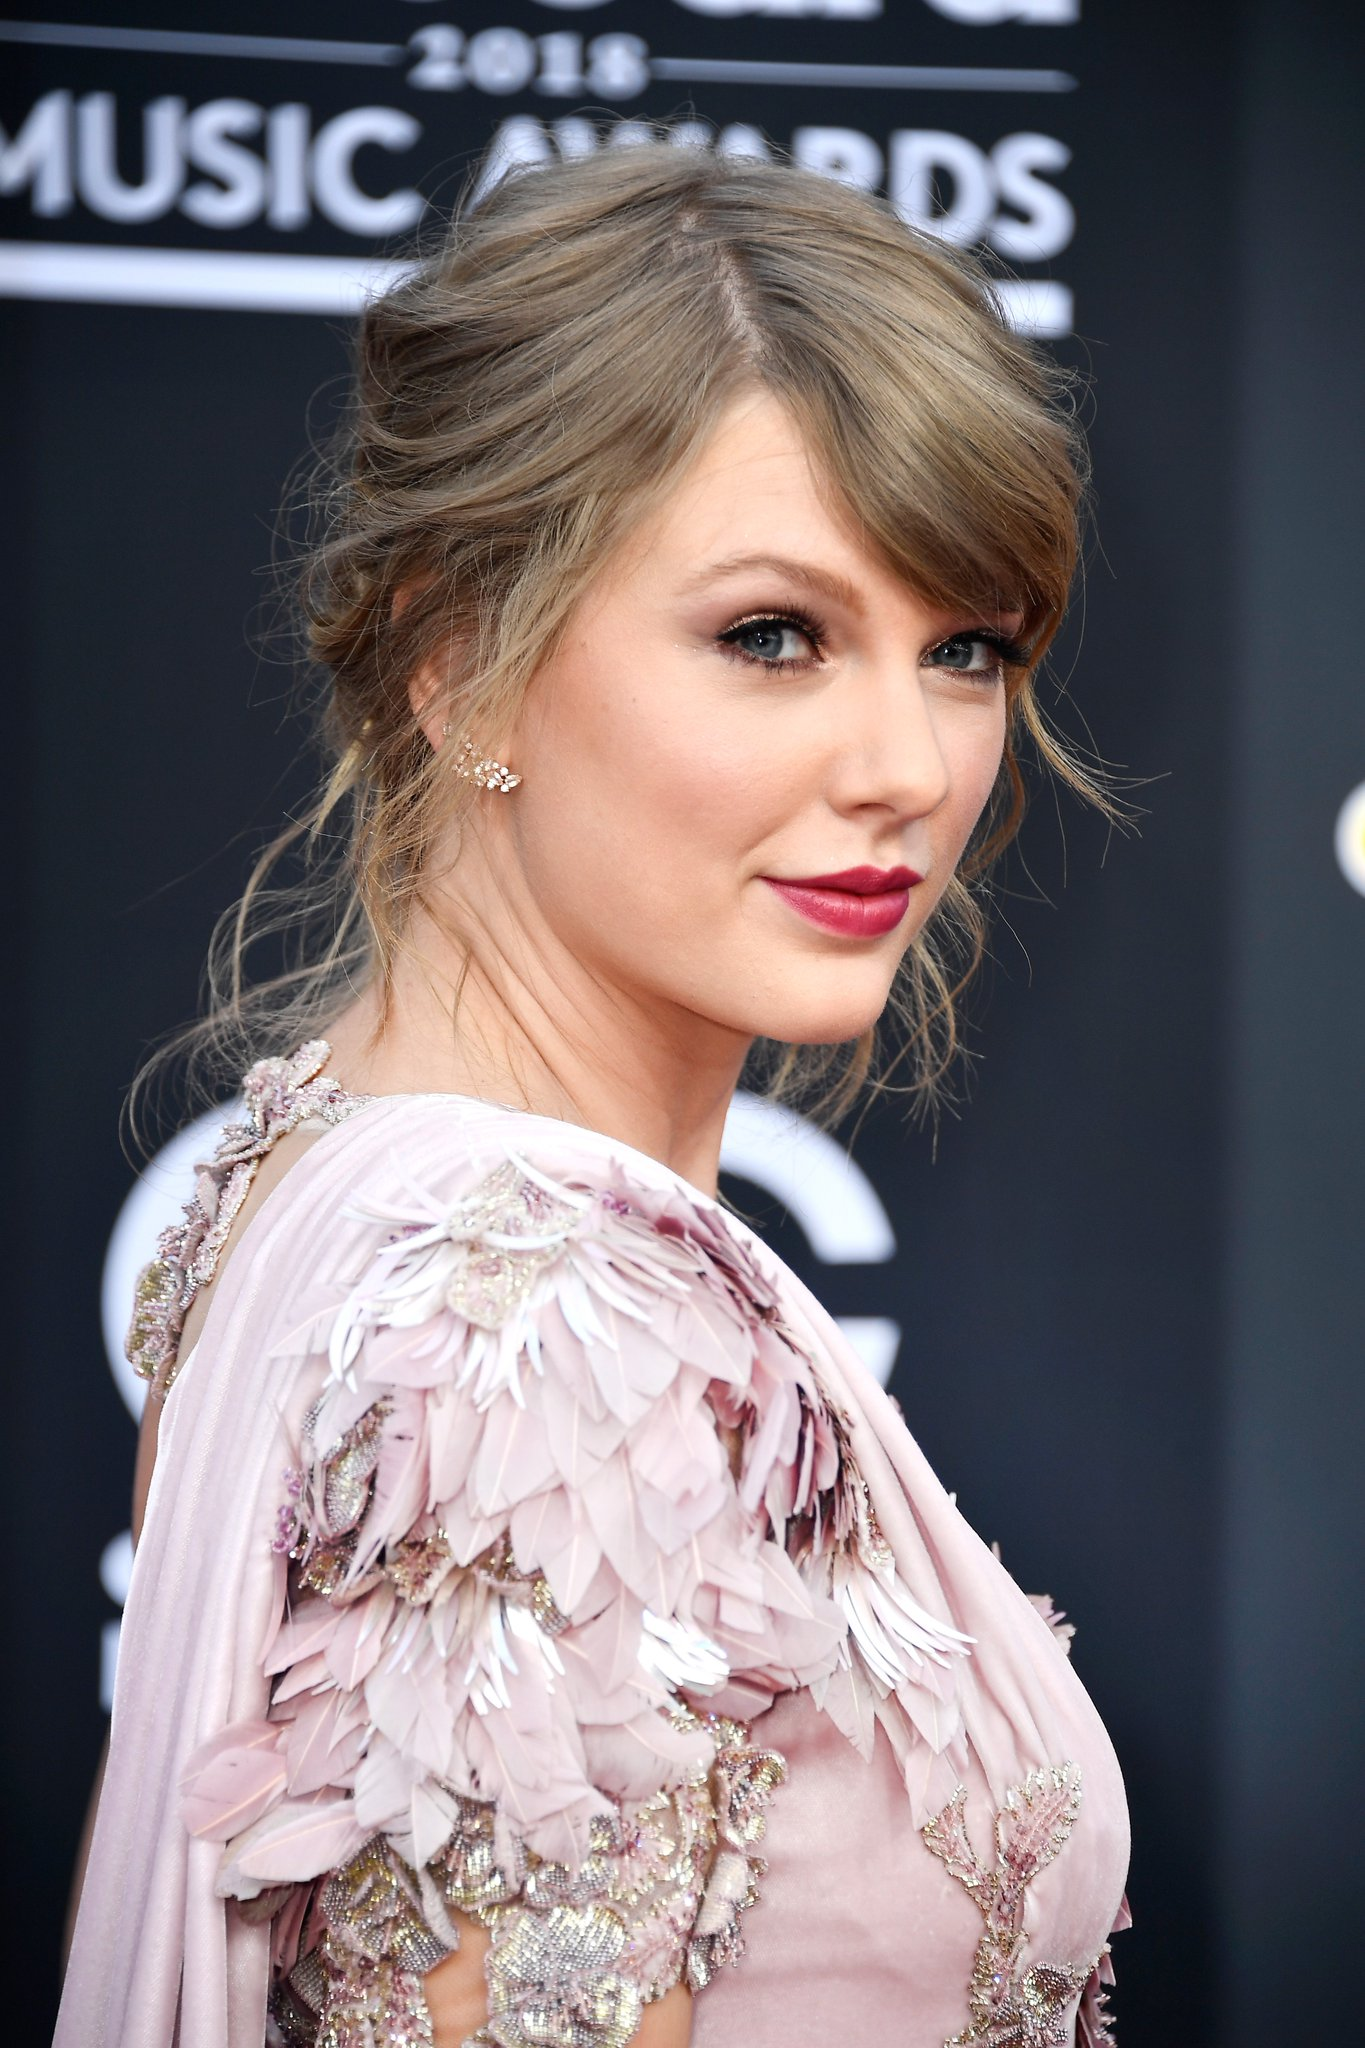 .@taylorswift13 looks so stunning �� #BBMAs https://t.co/d5M7I9YaqN